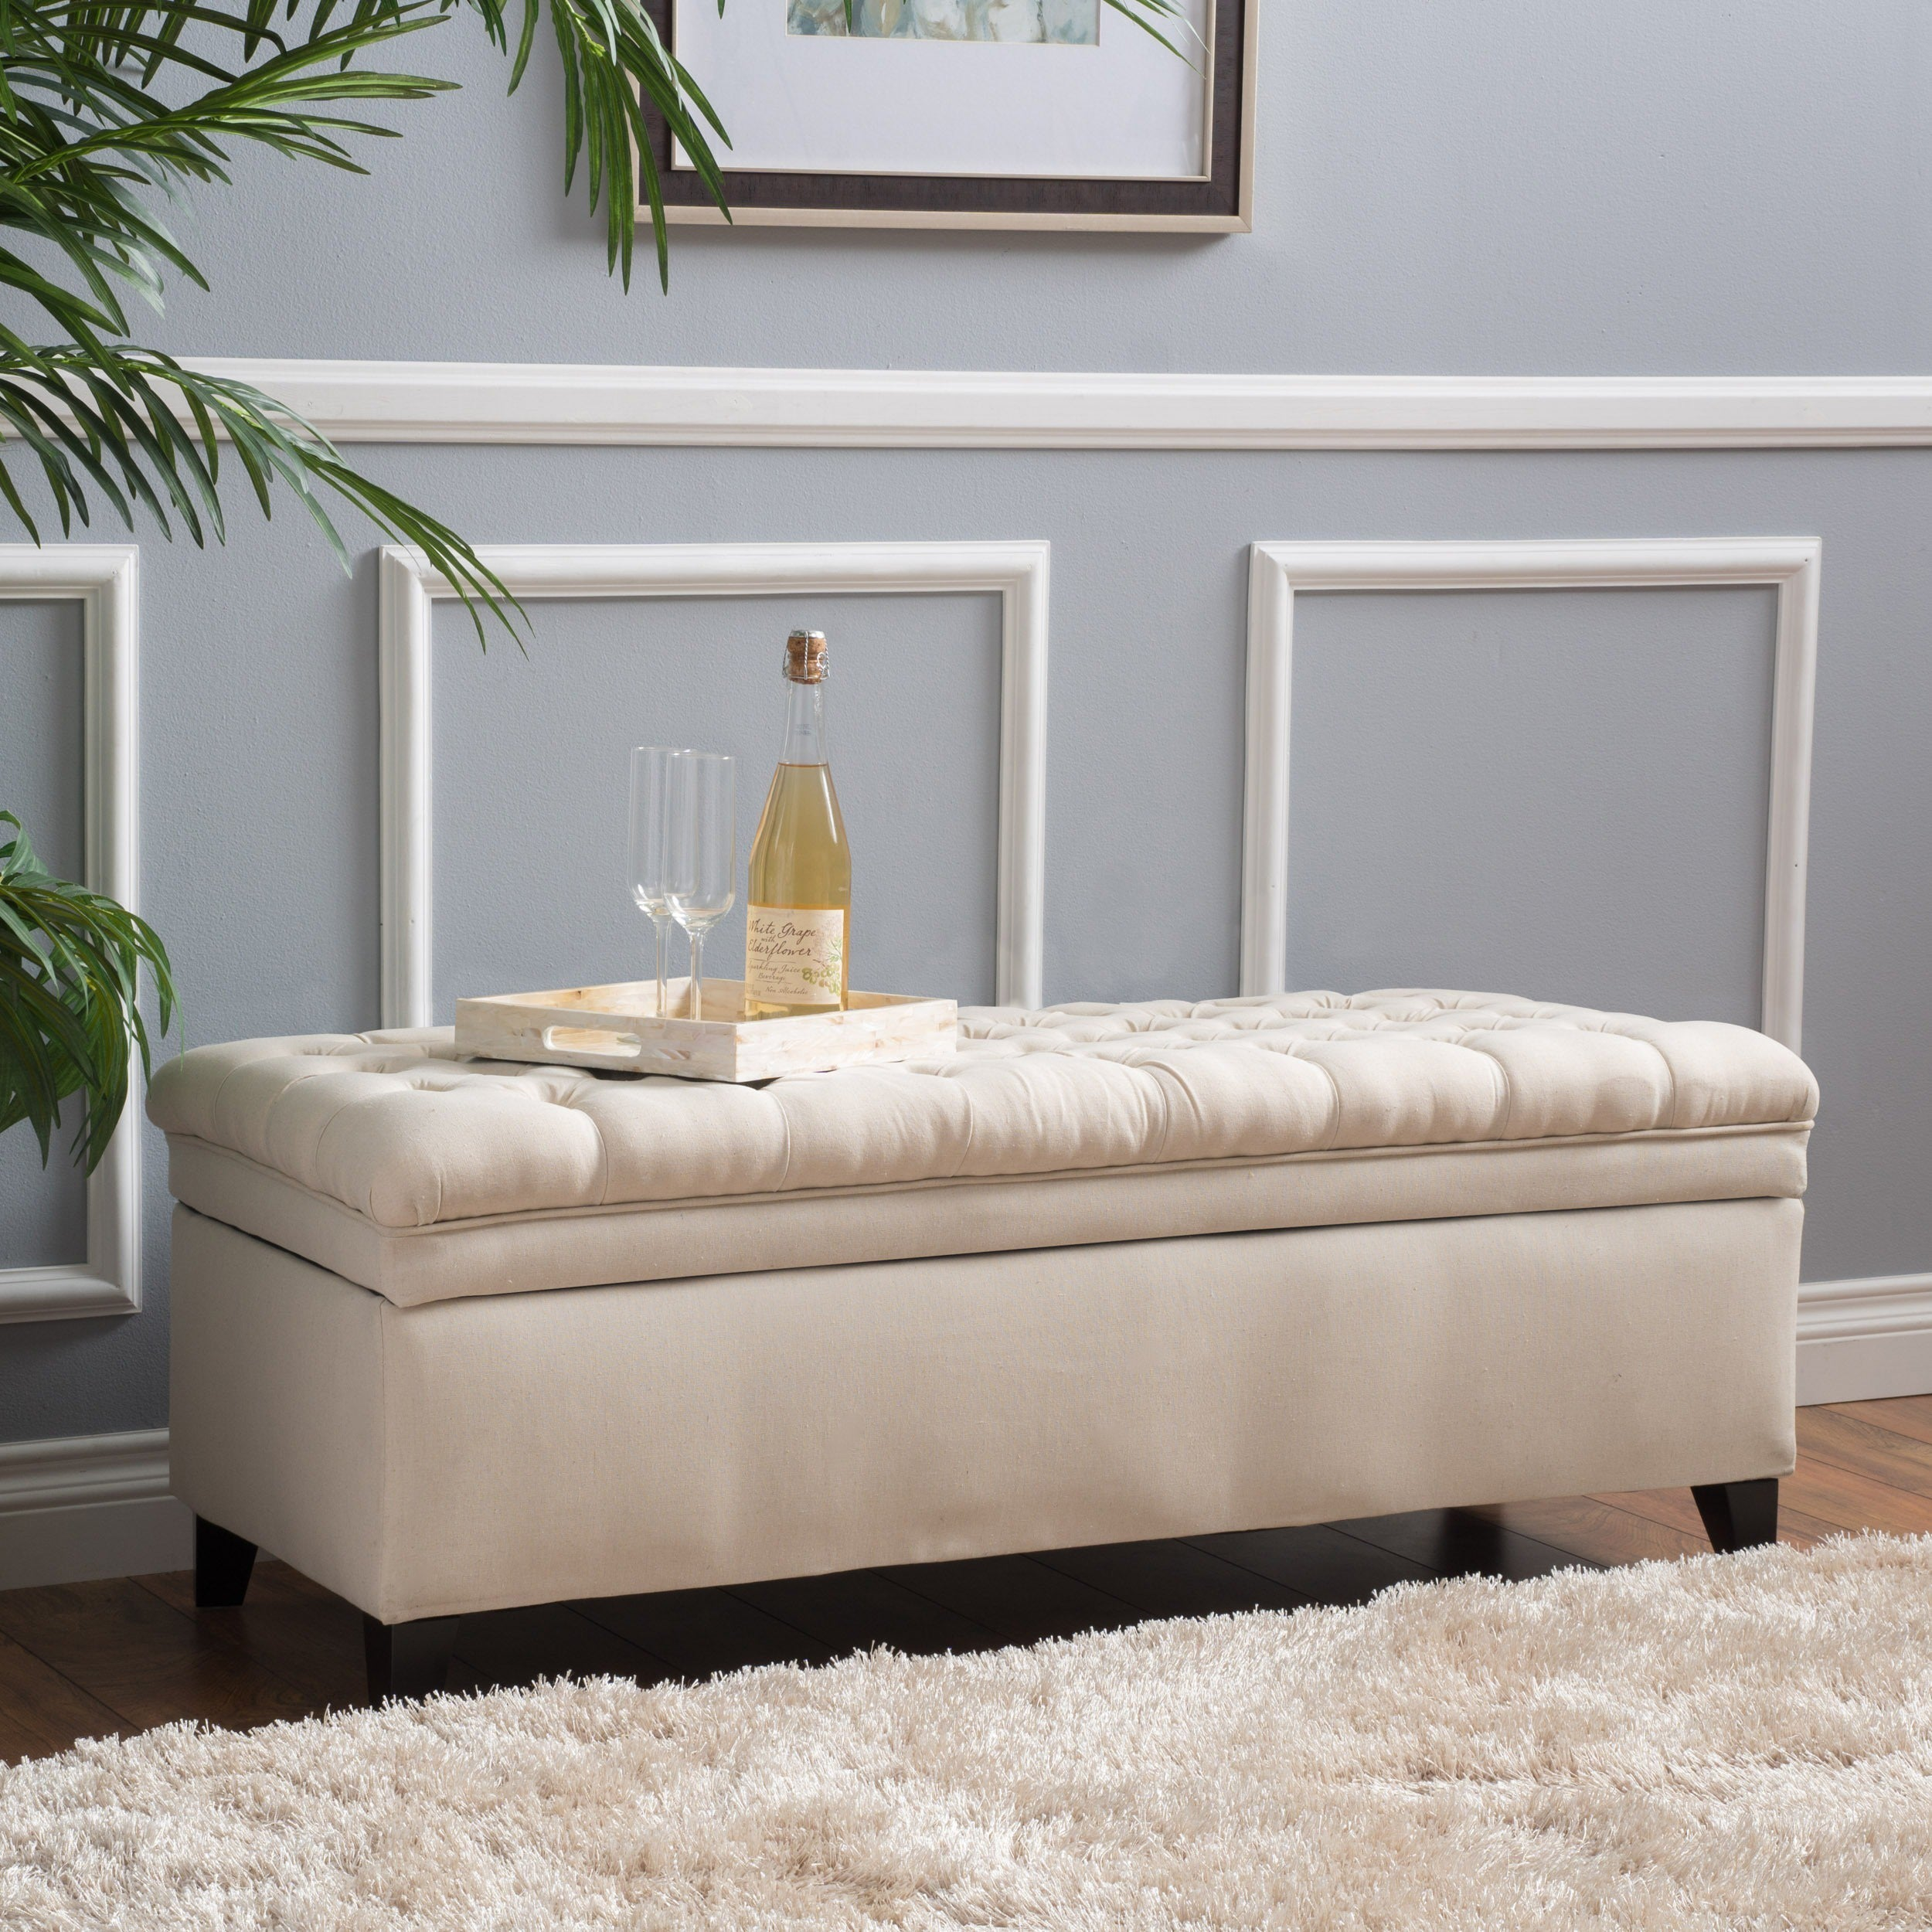 Christopher Knight Home Hastings Tufted Fabric Storage Ottoman Bench On Free Shipping Today 20603211